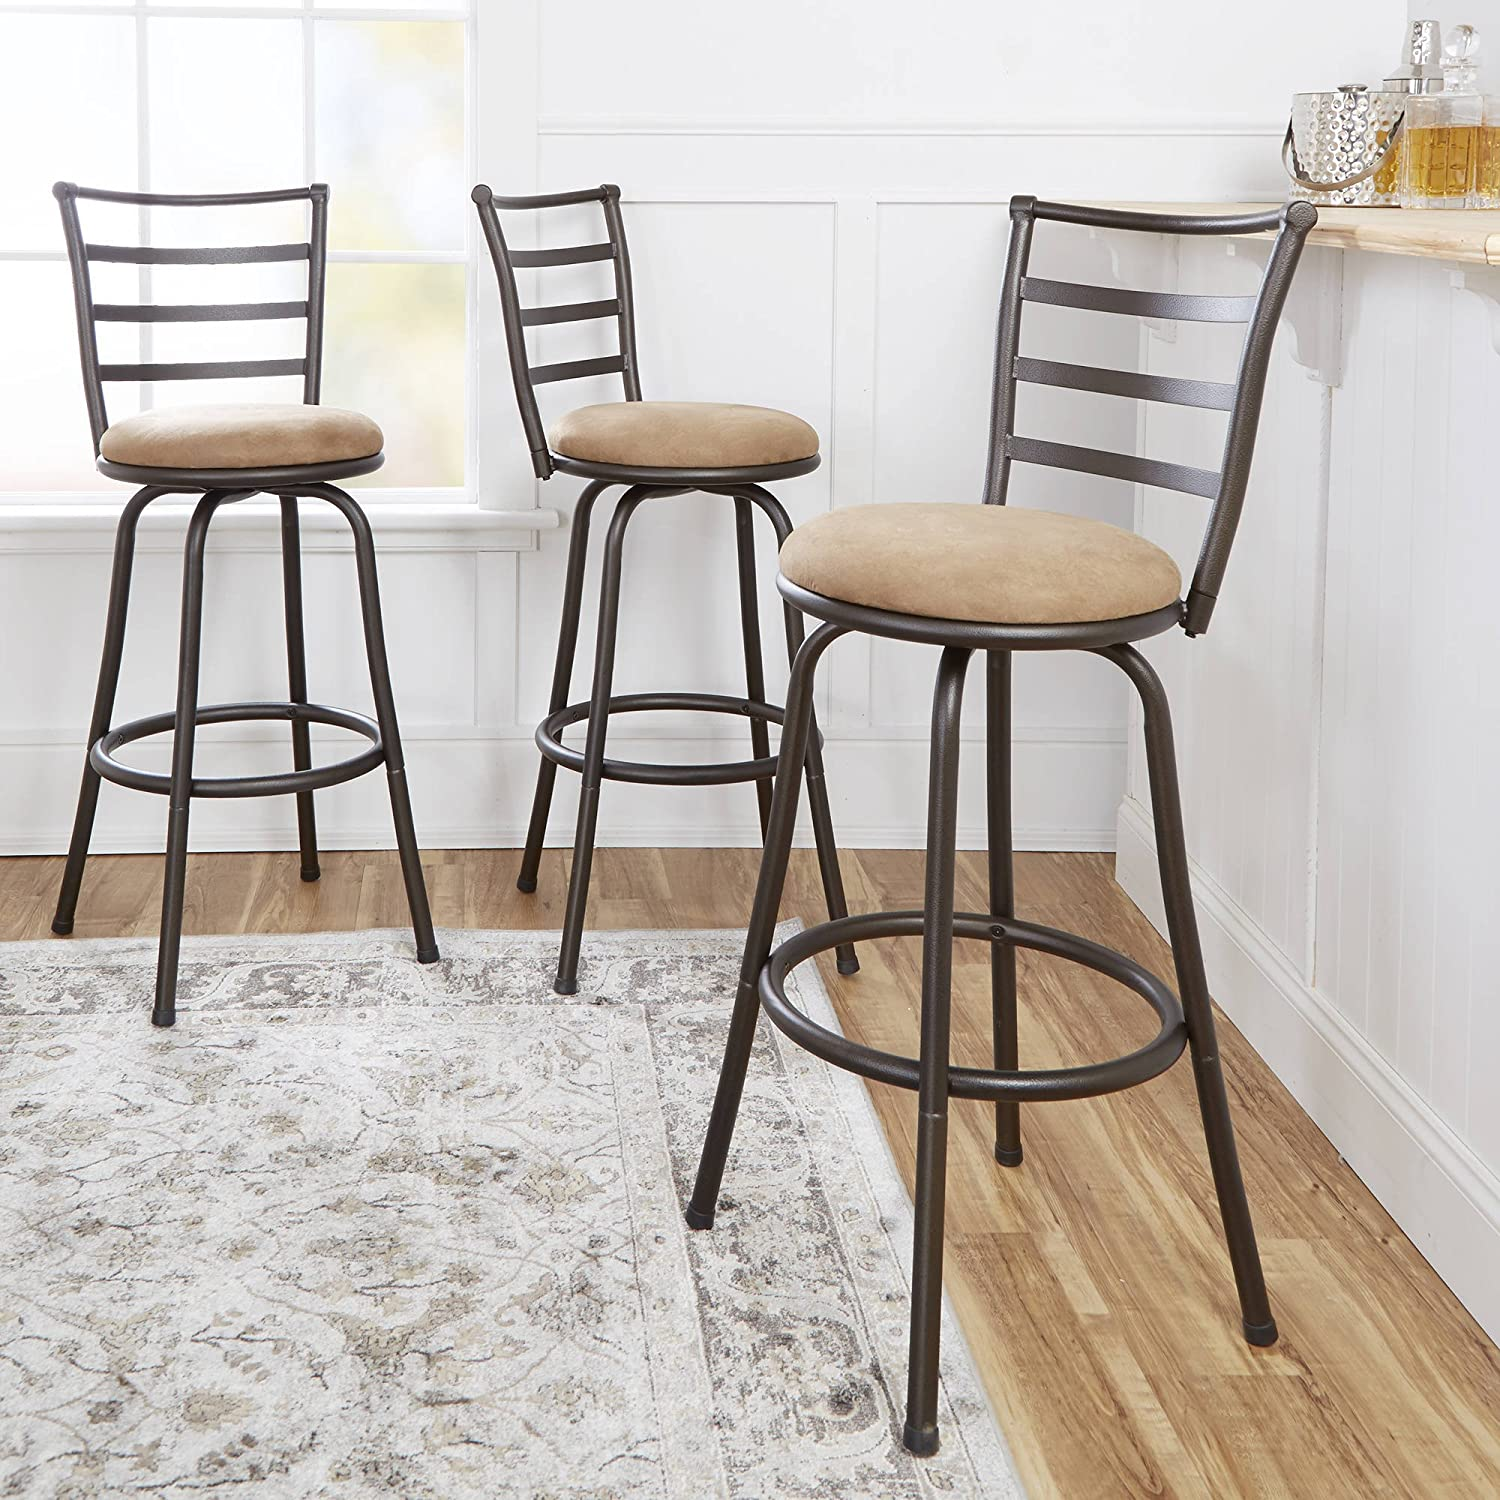 Mainstay Adjustable Height Swivel Barstool Hammered Bronze Finish Set Of 3 Tan Kitchen Dining Amazon Com